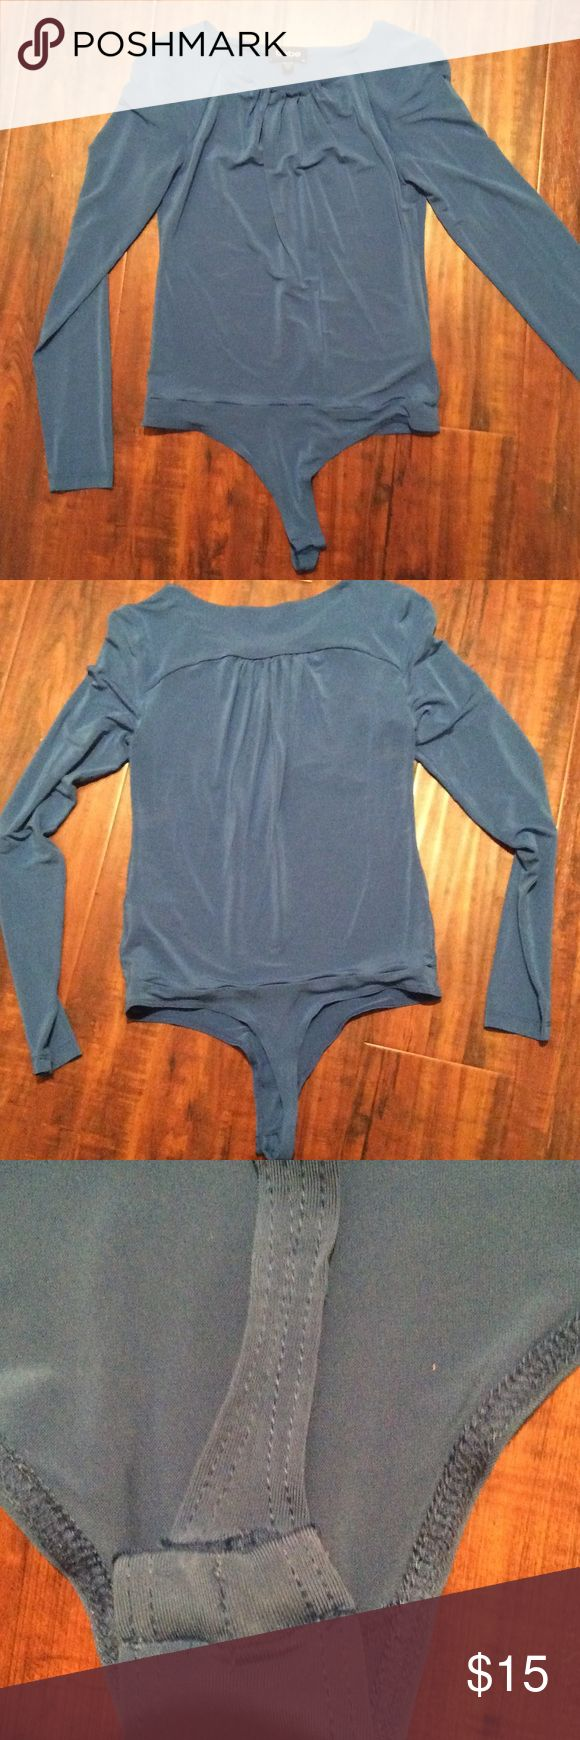 XS/S Bebe Royal Blue Bodysuit New, never worn. Snap closure thong. Royal blue color. Last pic is a good depiction of actual color. Stretchy rayon fabric. Fits like a small. bebe Tops Blouses